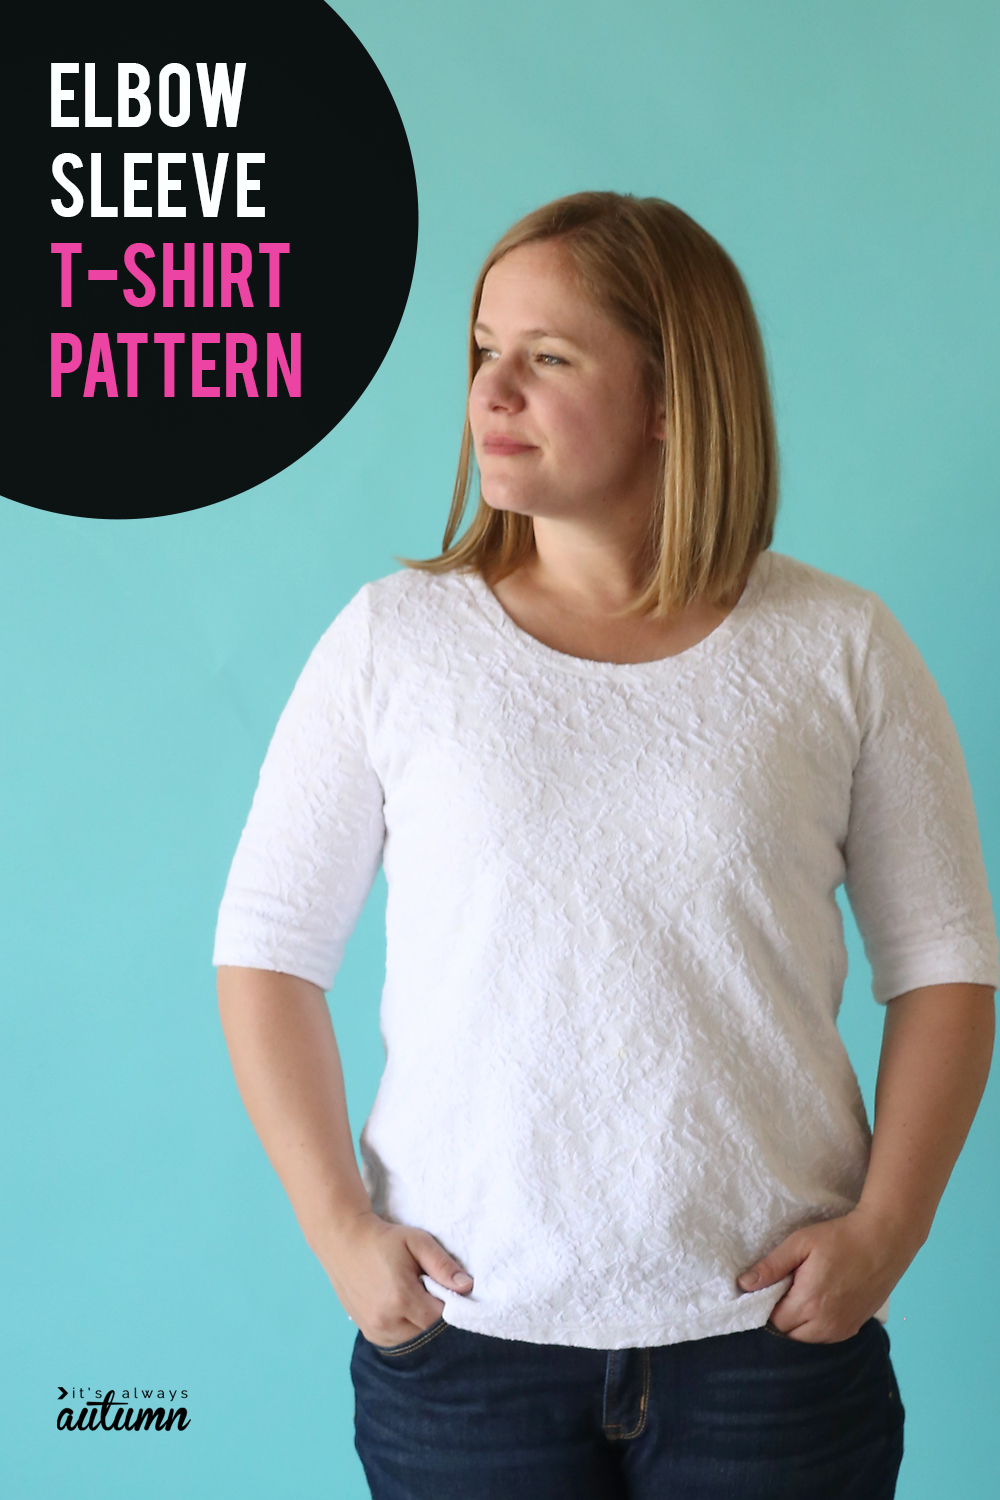 Learn how to sew a classic t-shirt with flattering elbow length sleeves with this sewing pattern and tutorial.